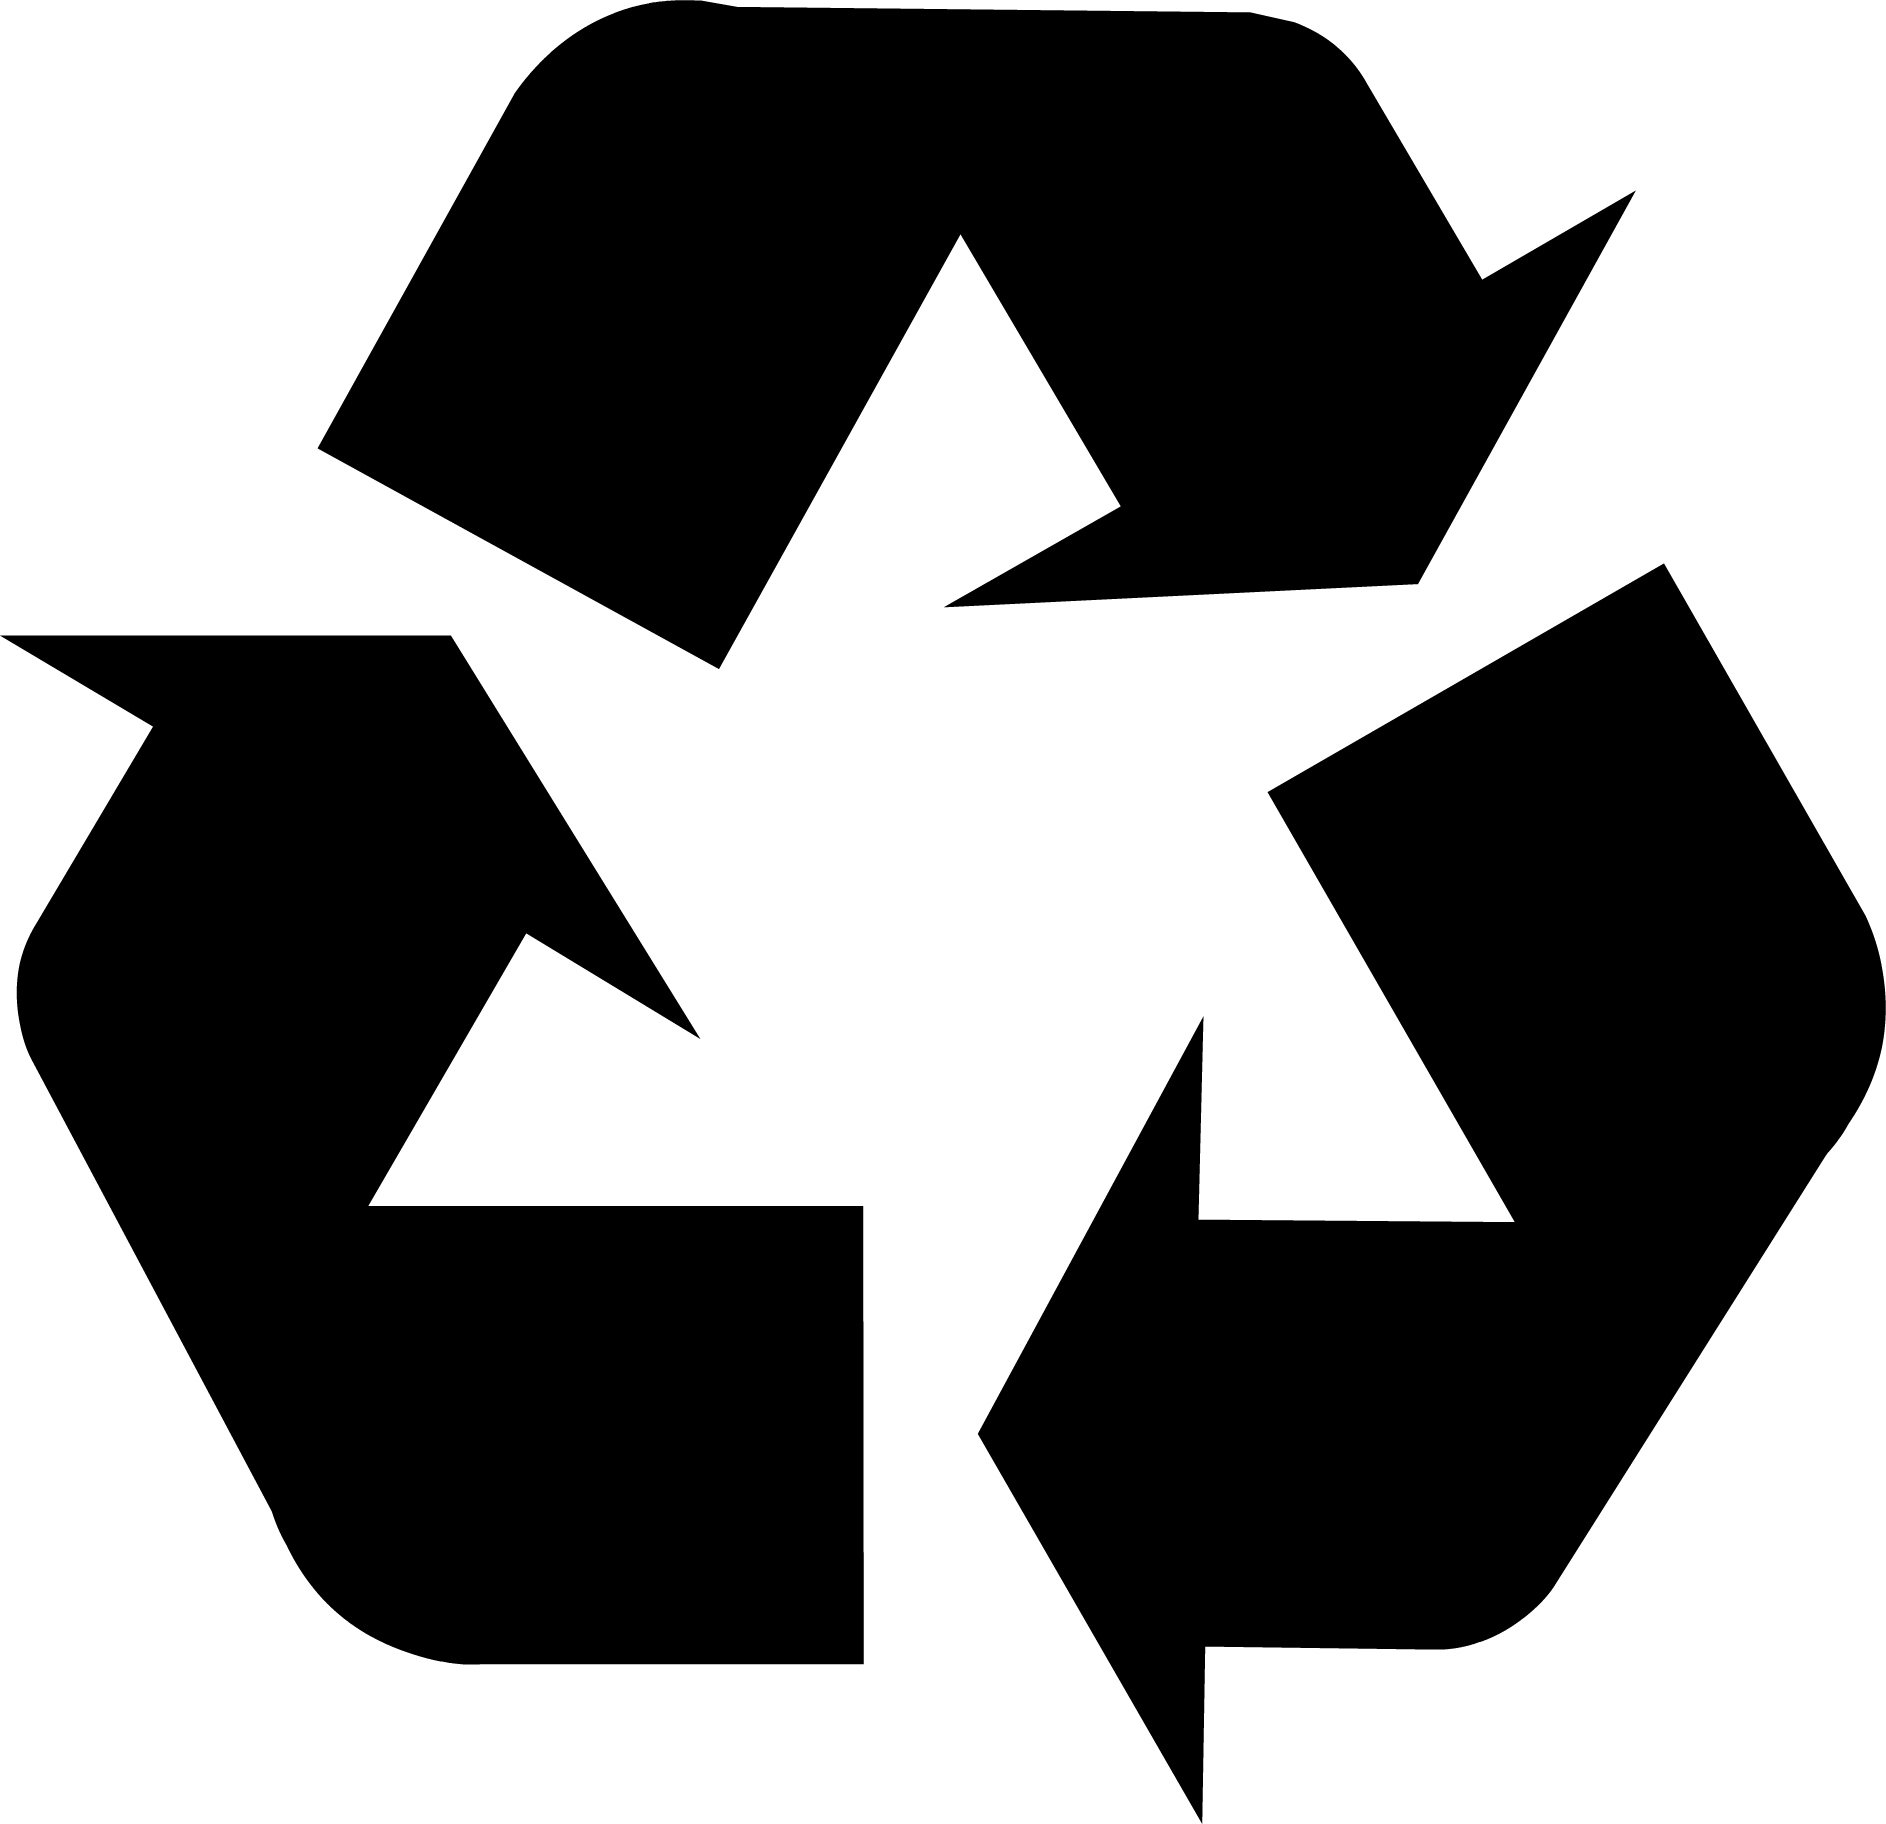 download recycling symbol the original recycle logo rh recycling com recycle logo vector free recycle logo vector download